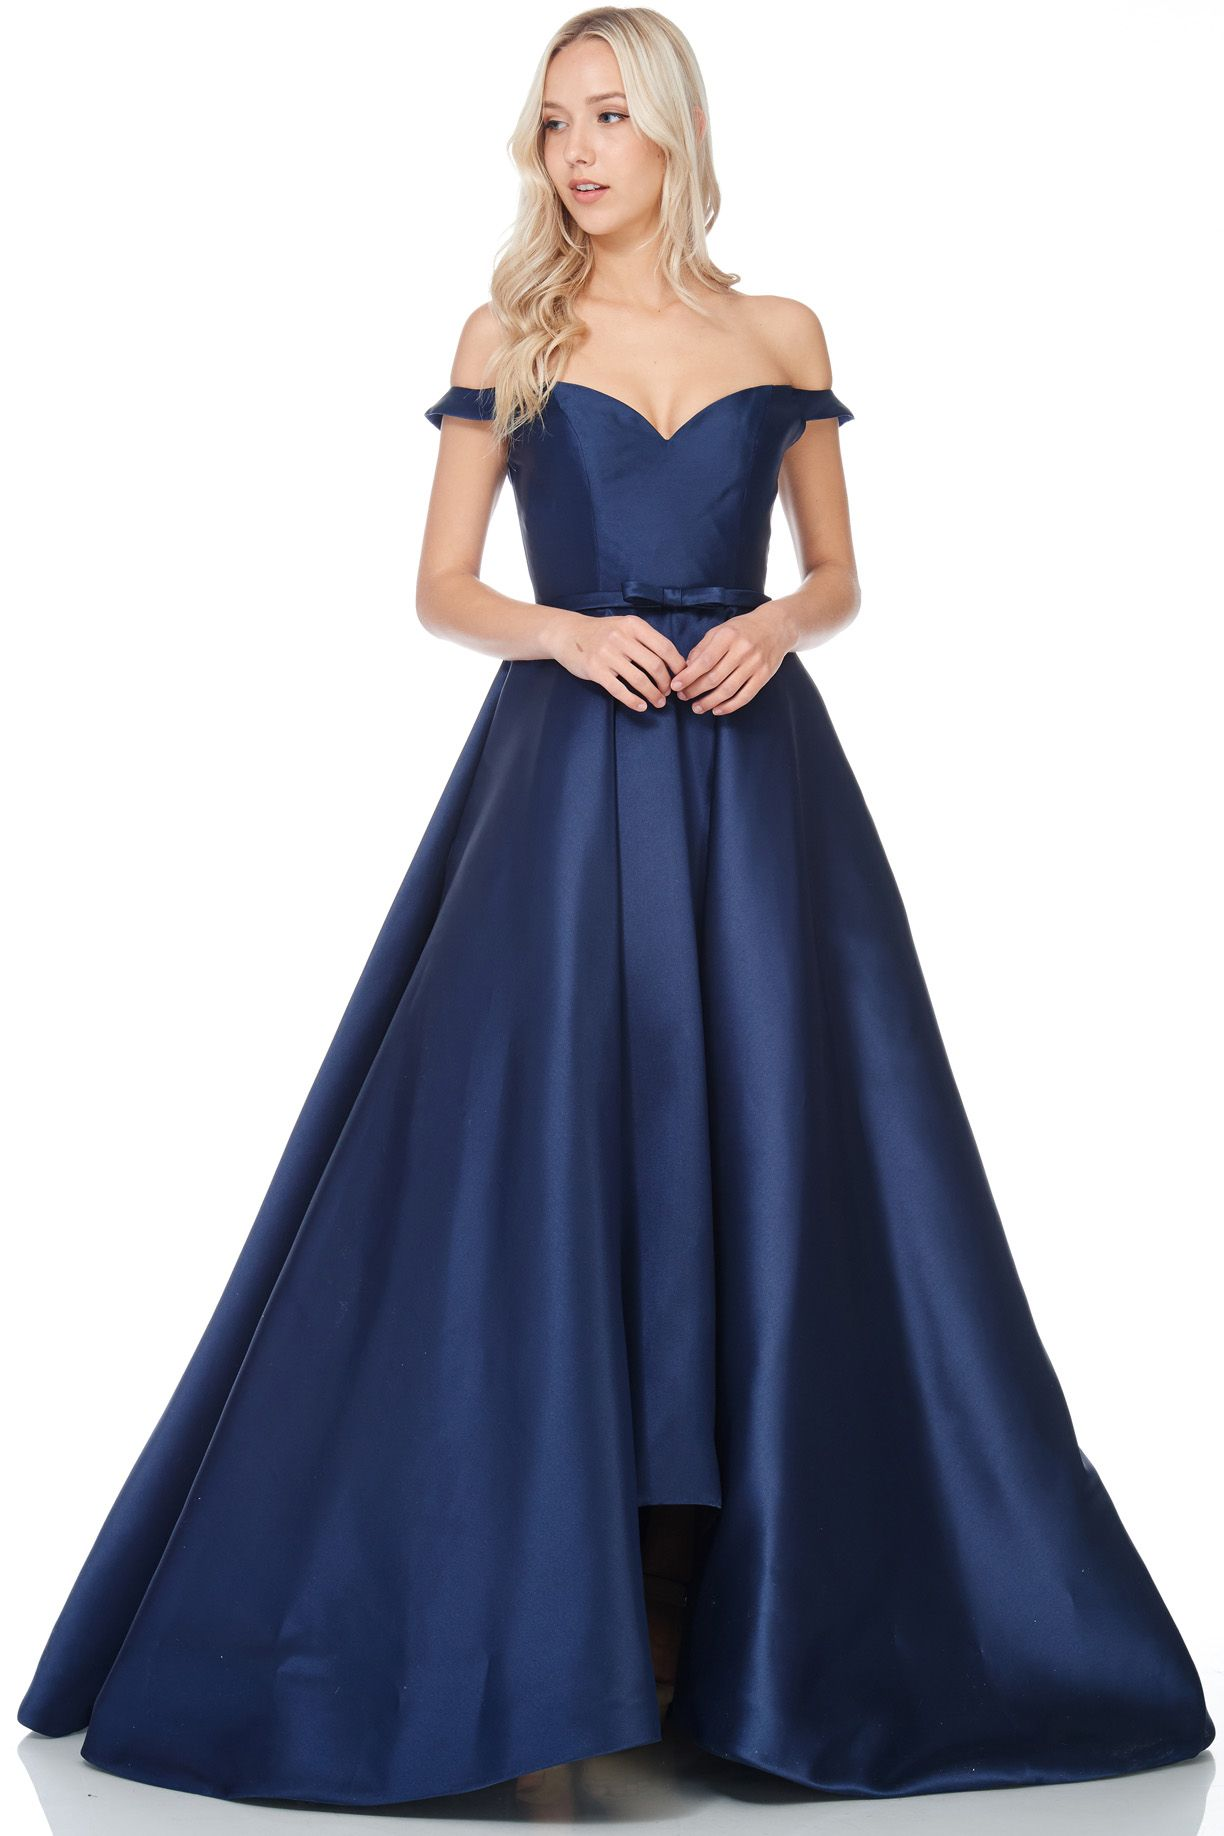 455c0bb91a14 Taffeta Navy Ball Gown Bridesmaid Dress : contact us for special order.